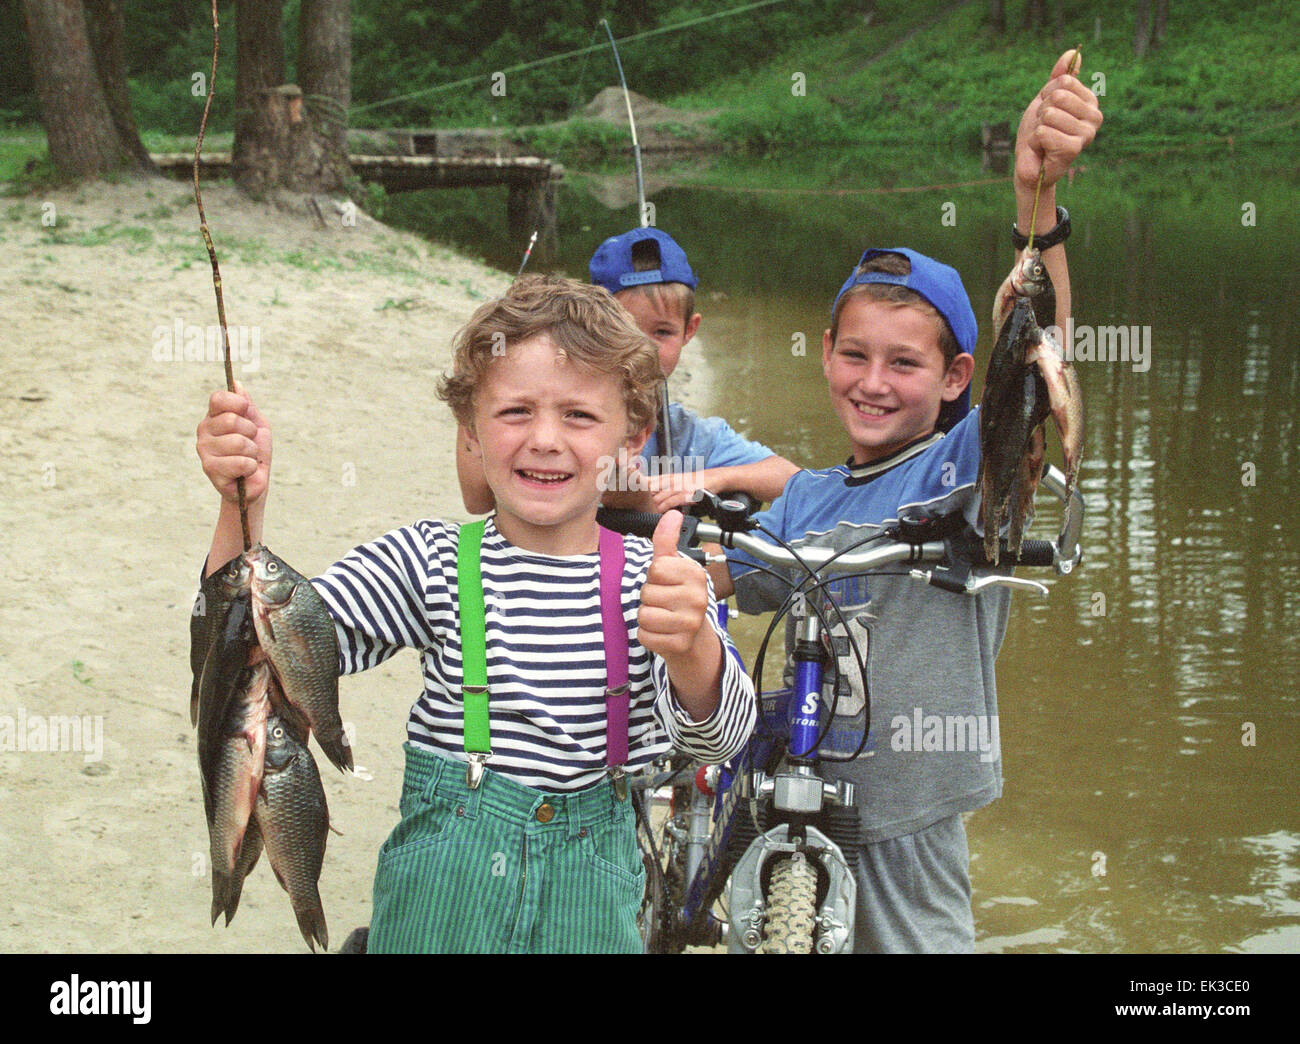 Fishing in Belgorod and the Belgorod region: fish places and fishing methods 13